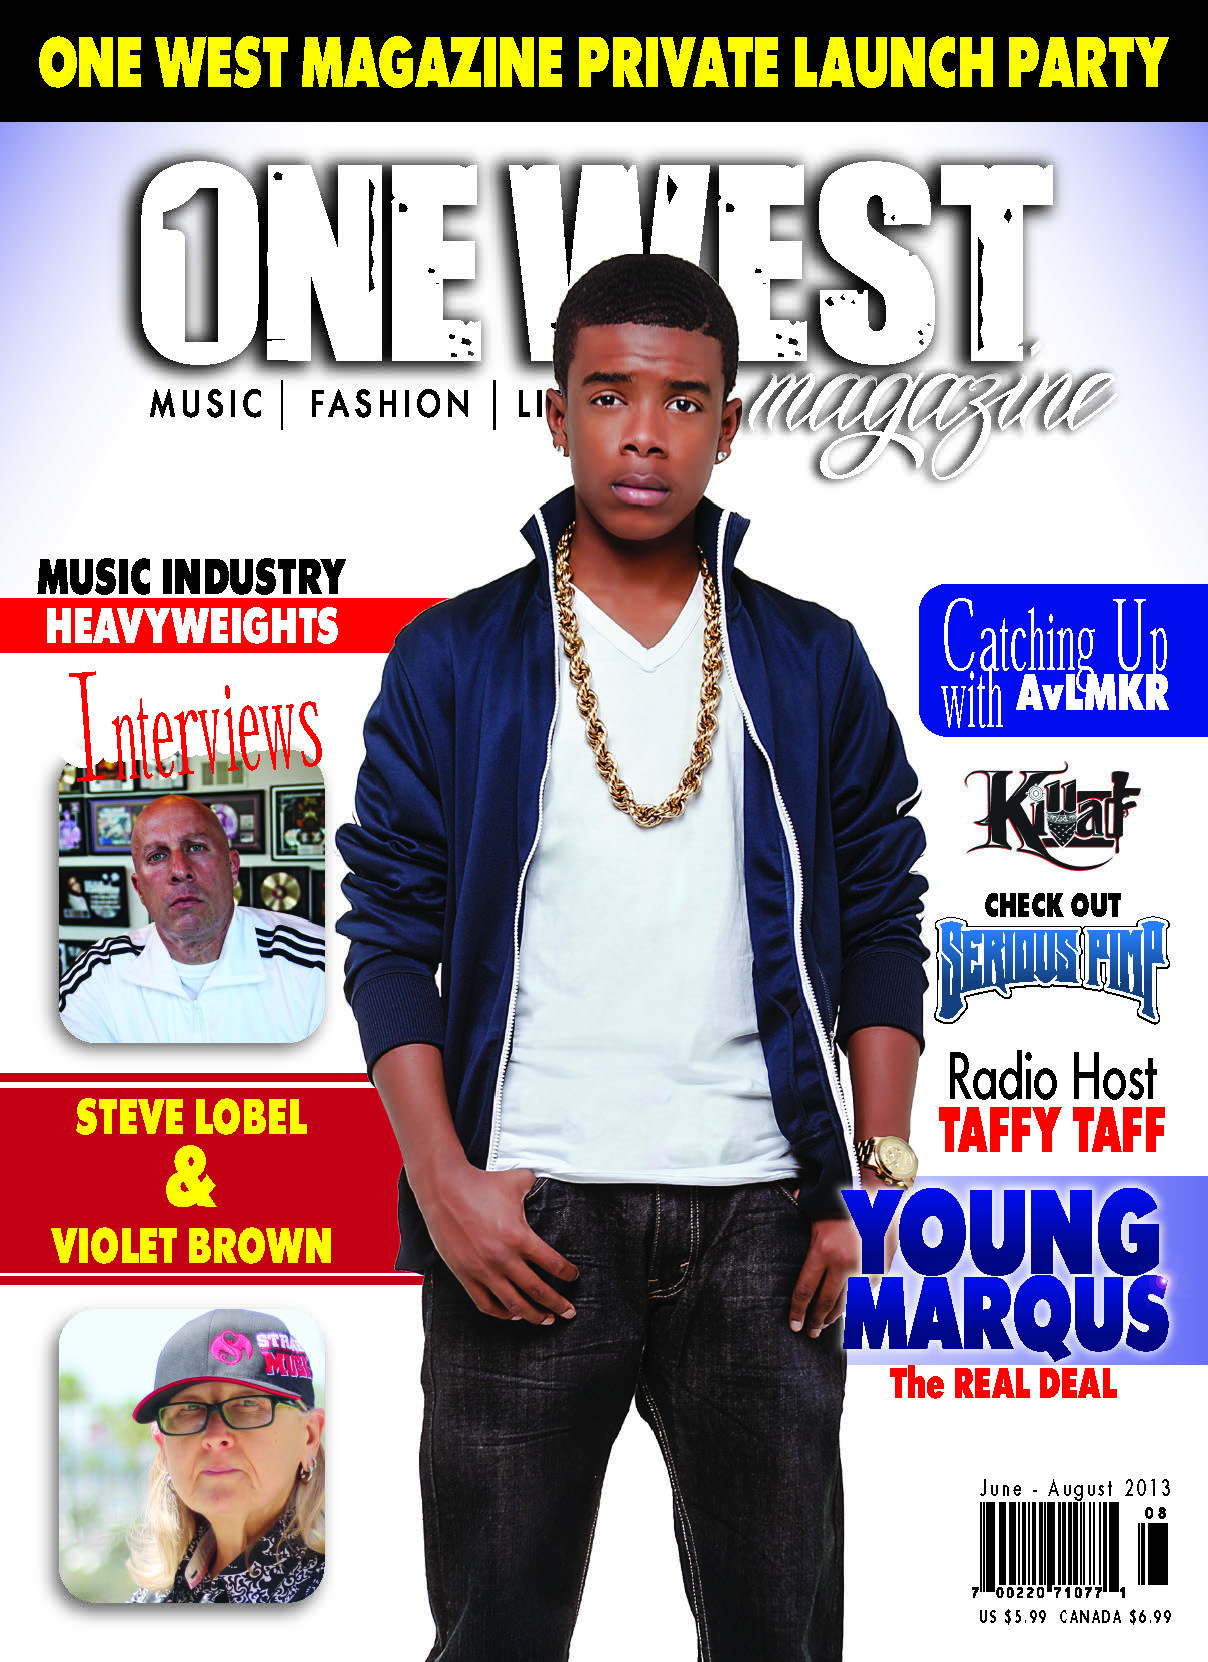 One West Magazine - Young Marqus Cover (June 2013 to August 2013)